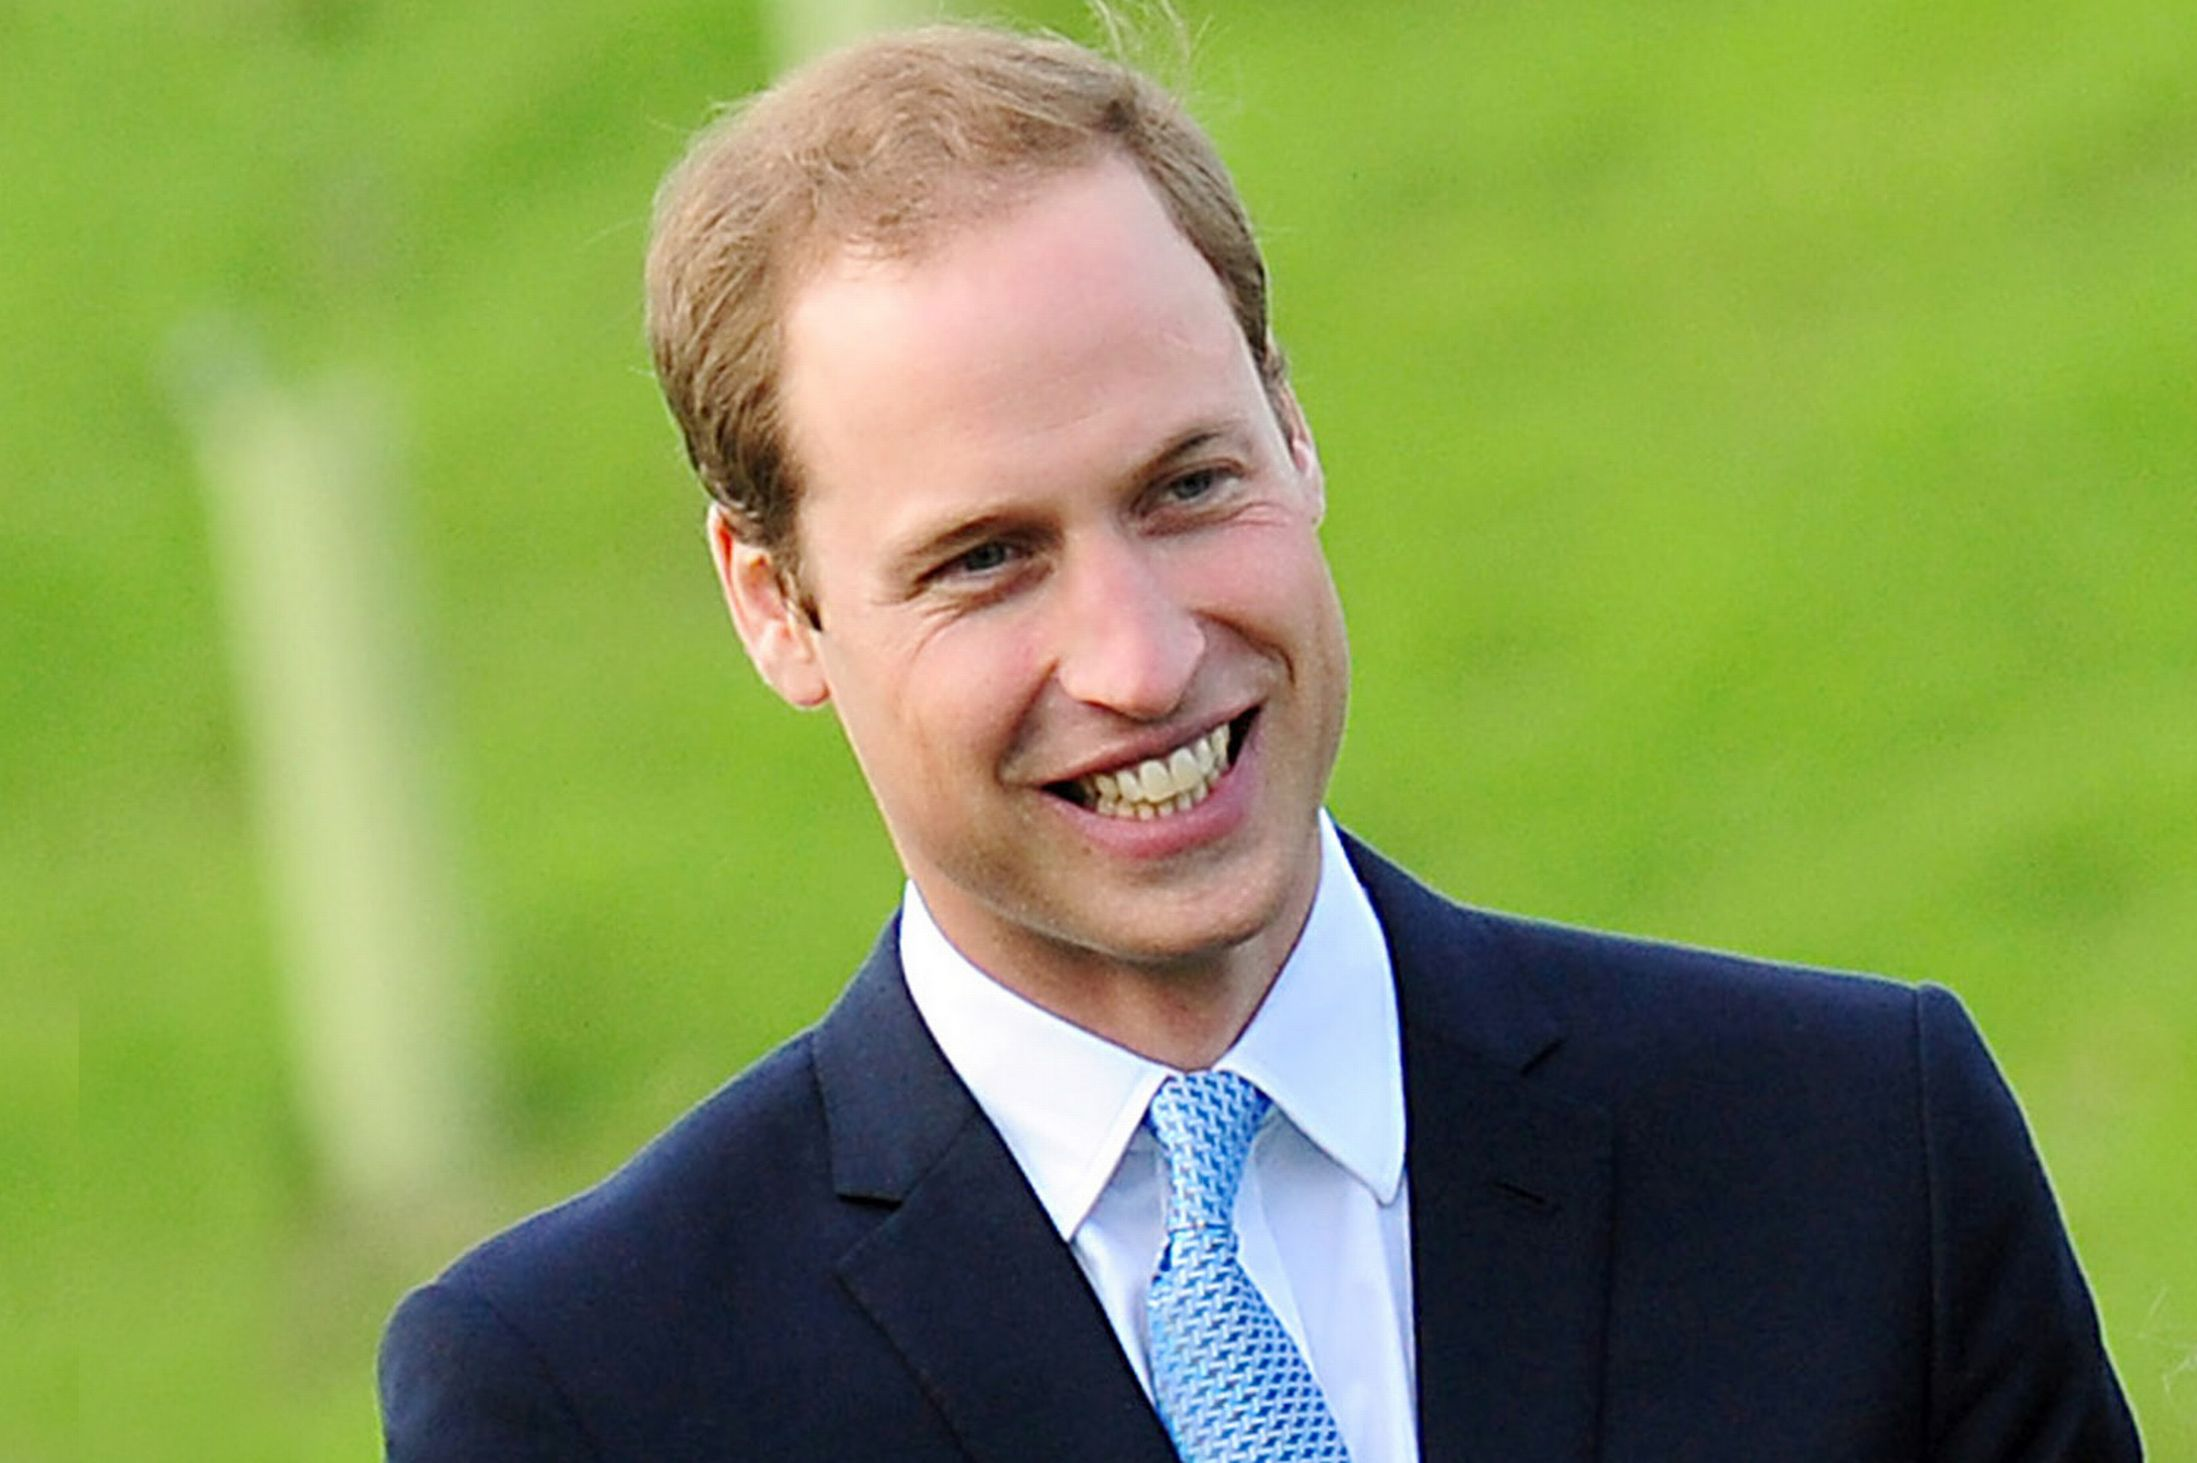 Prince+William